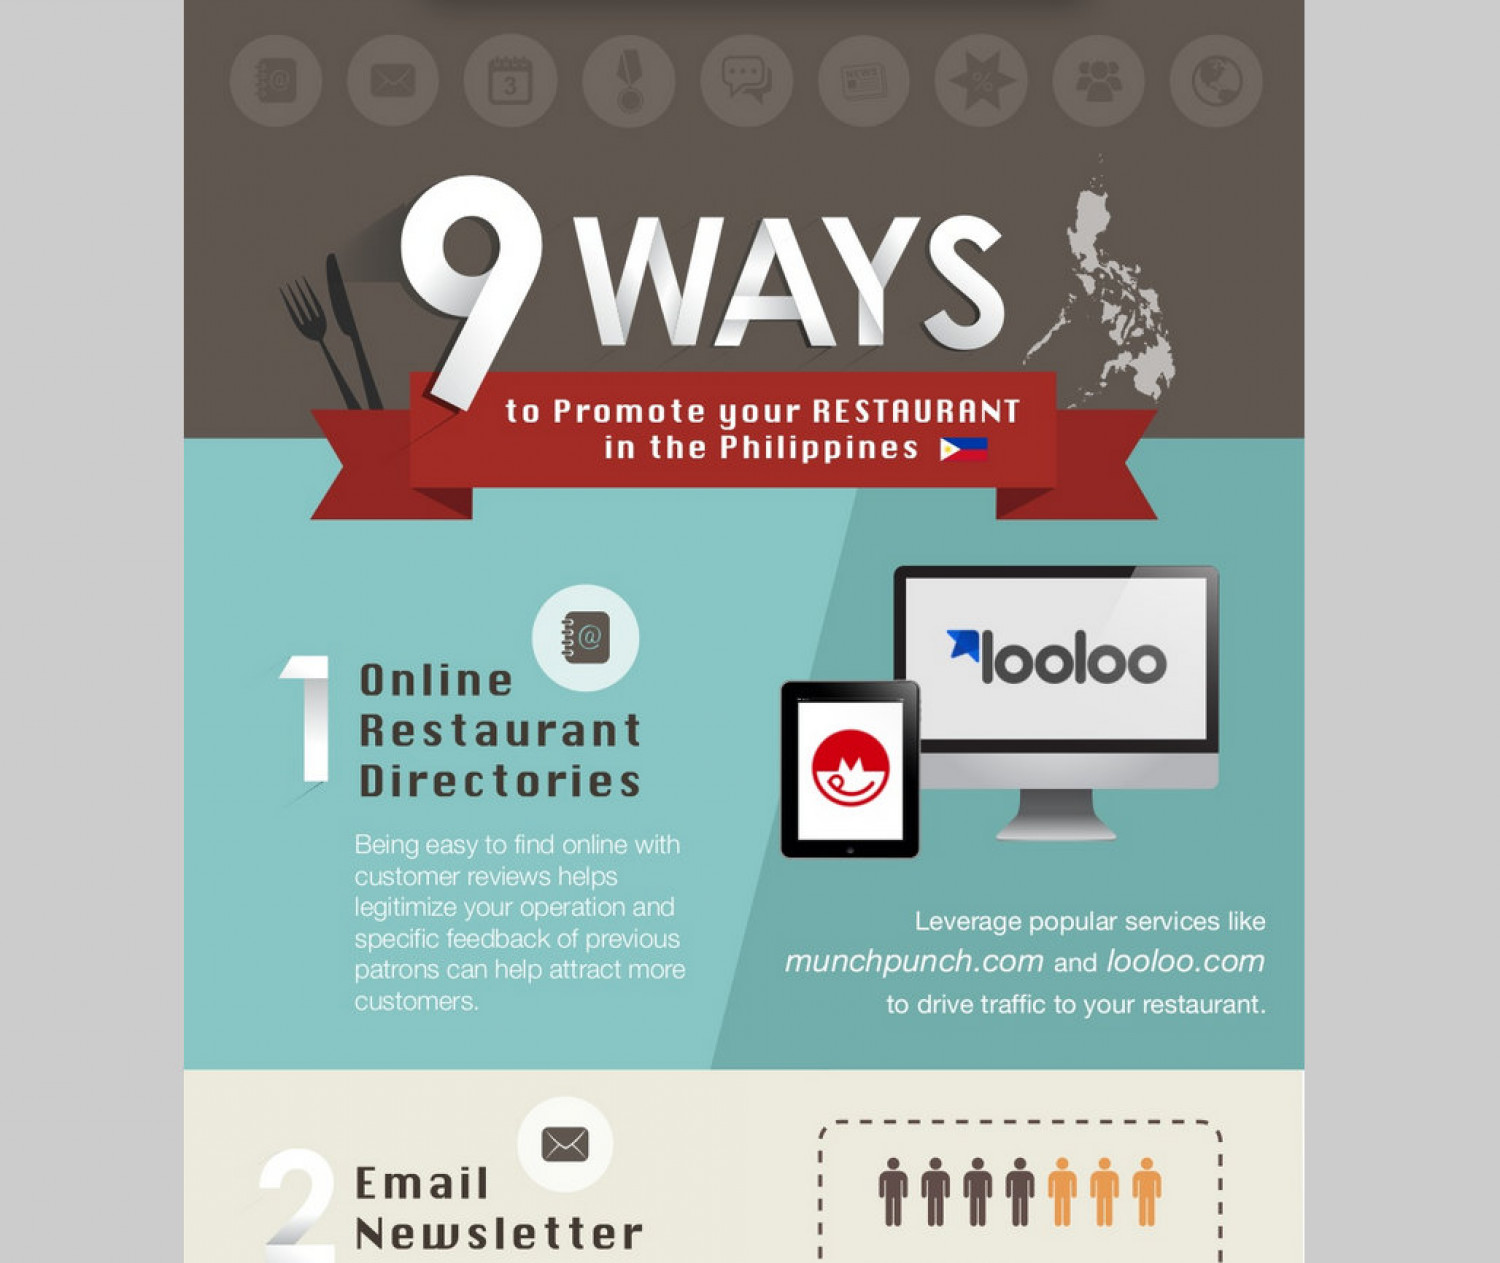 9 Ways to Promote Your Restaurant in The Philippines Infographic